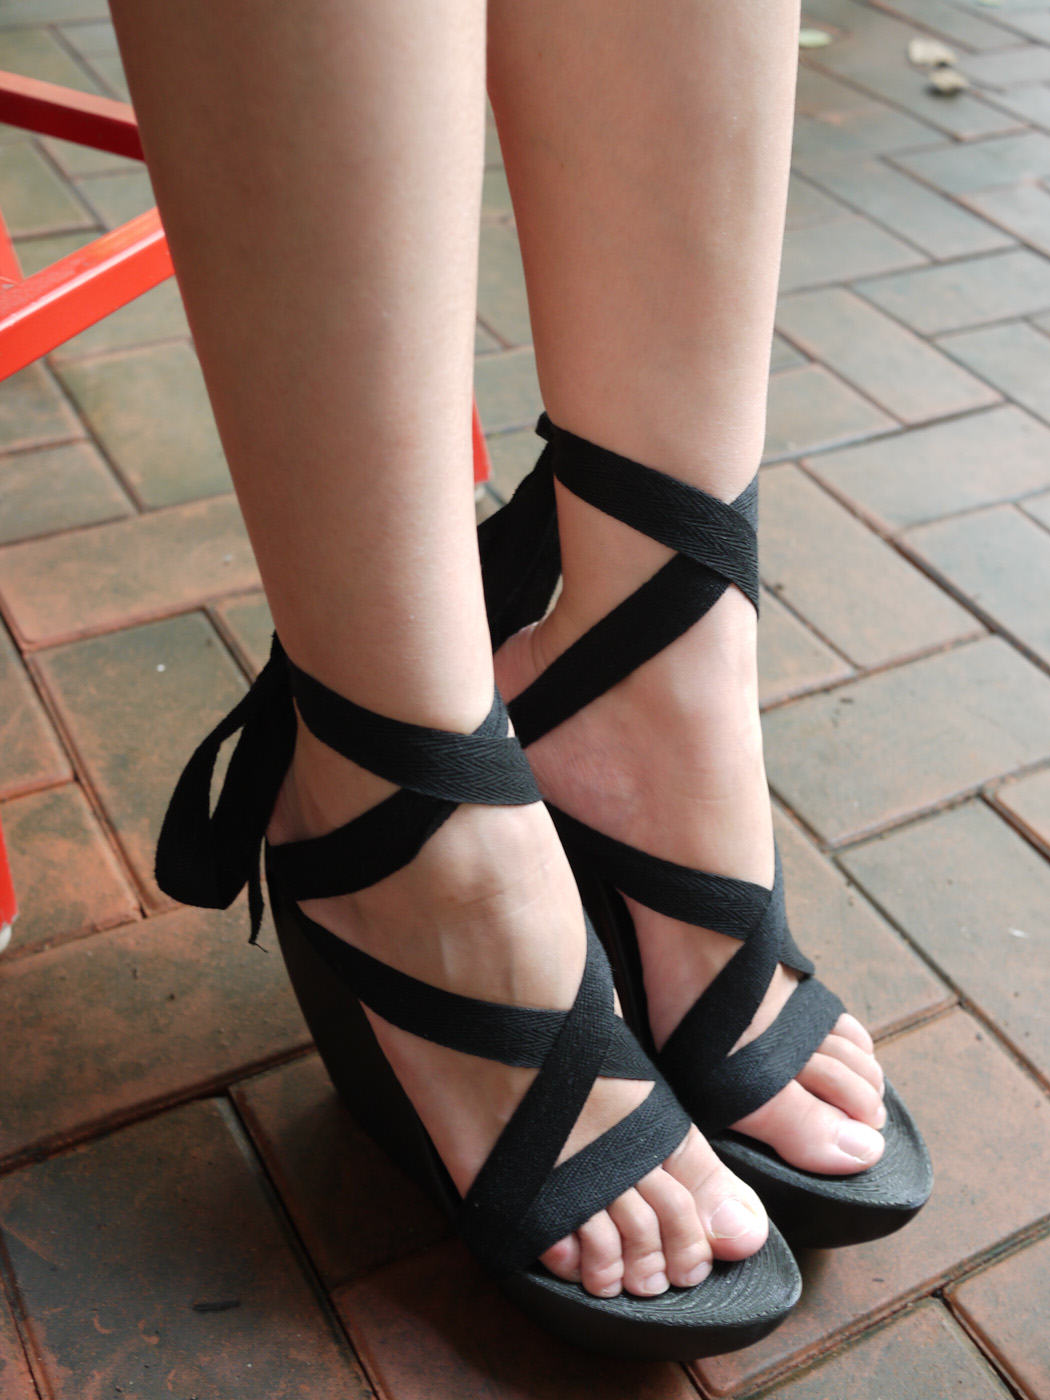 Chinese Engineer 'SexyCyborg' Hides Portable Hacking Kit In Her Platform Heels UNILAD 35